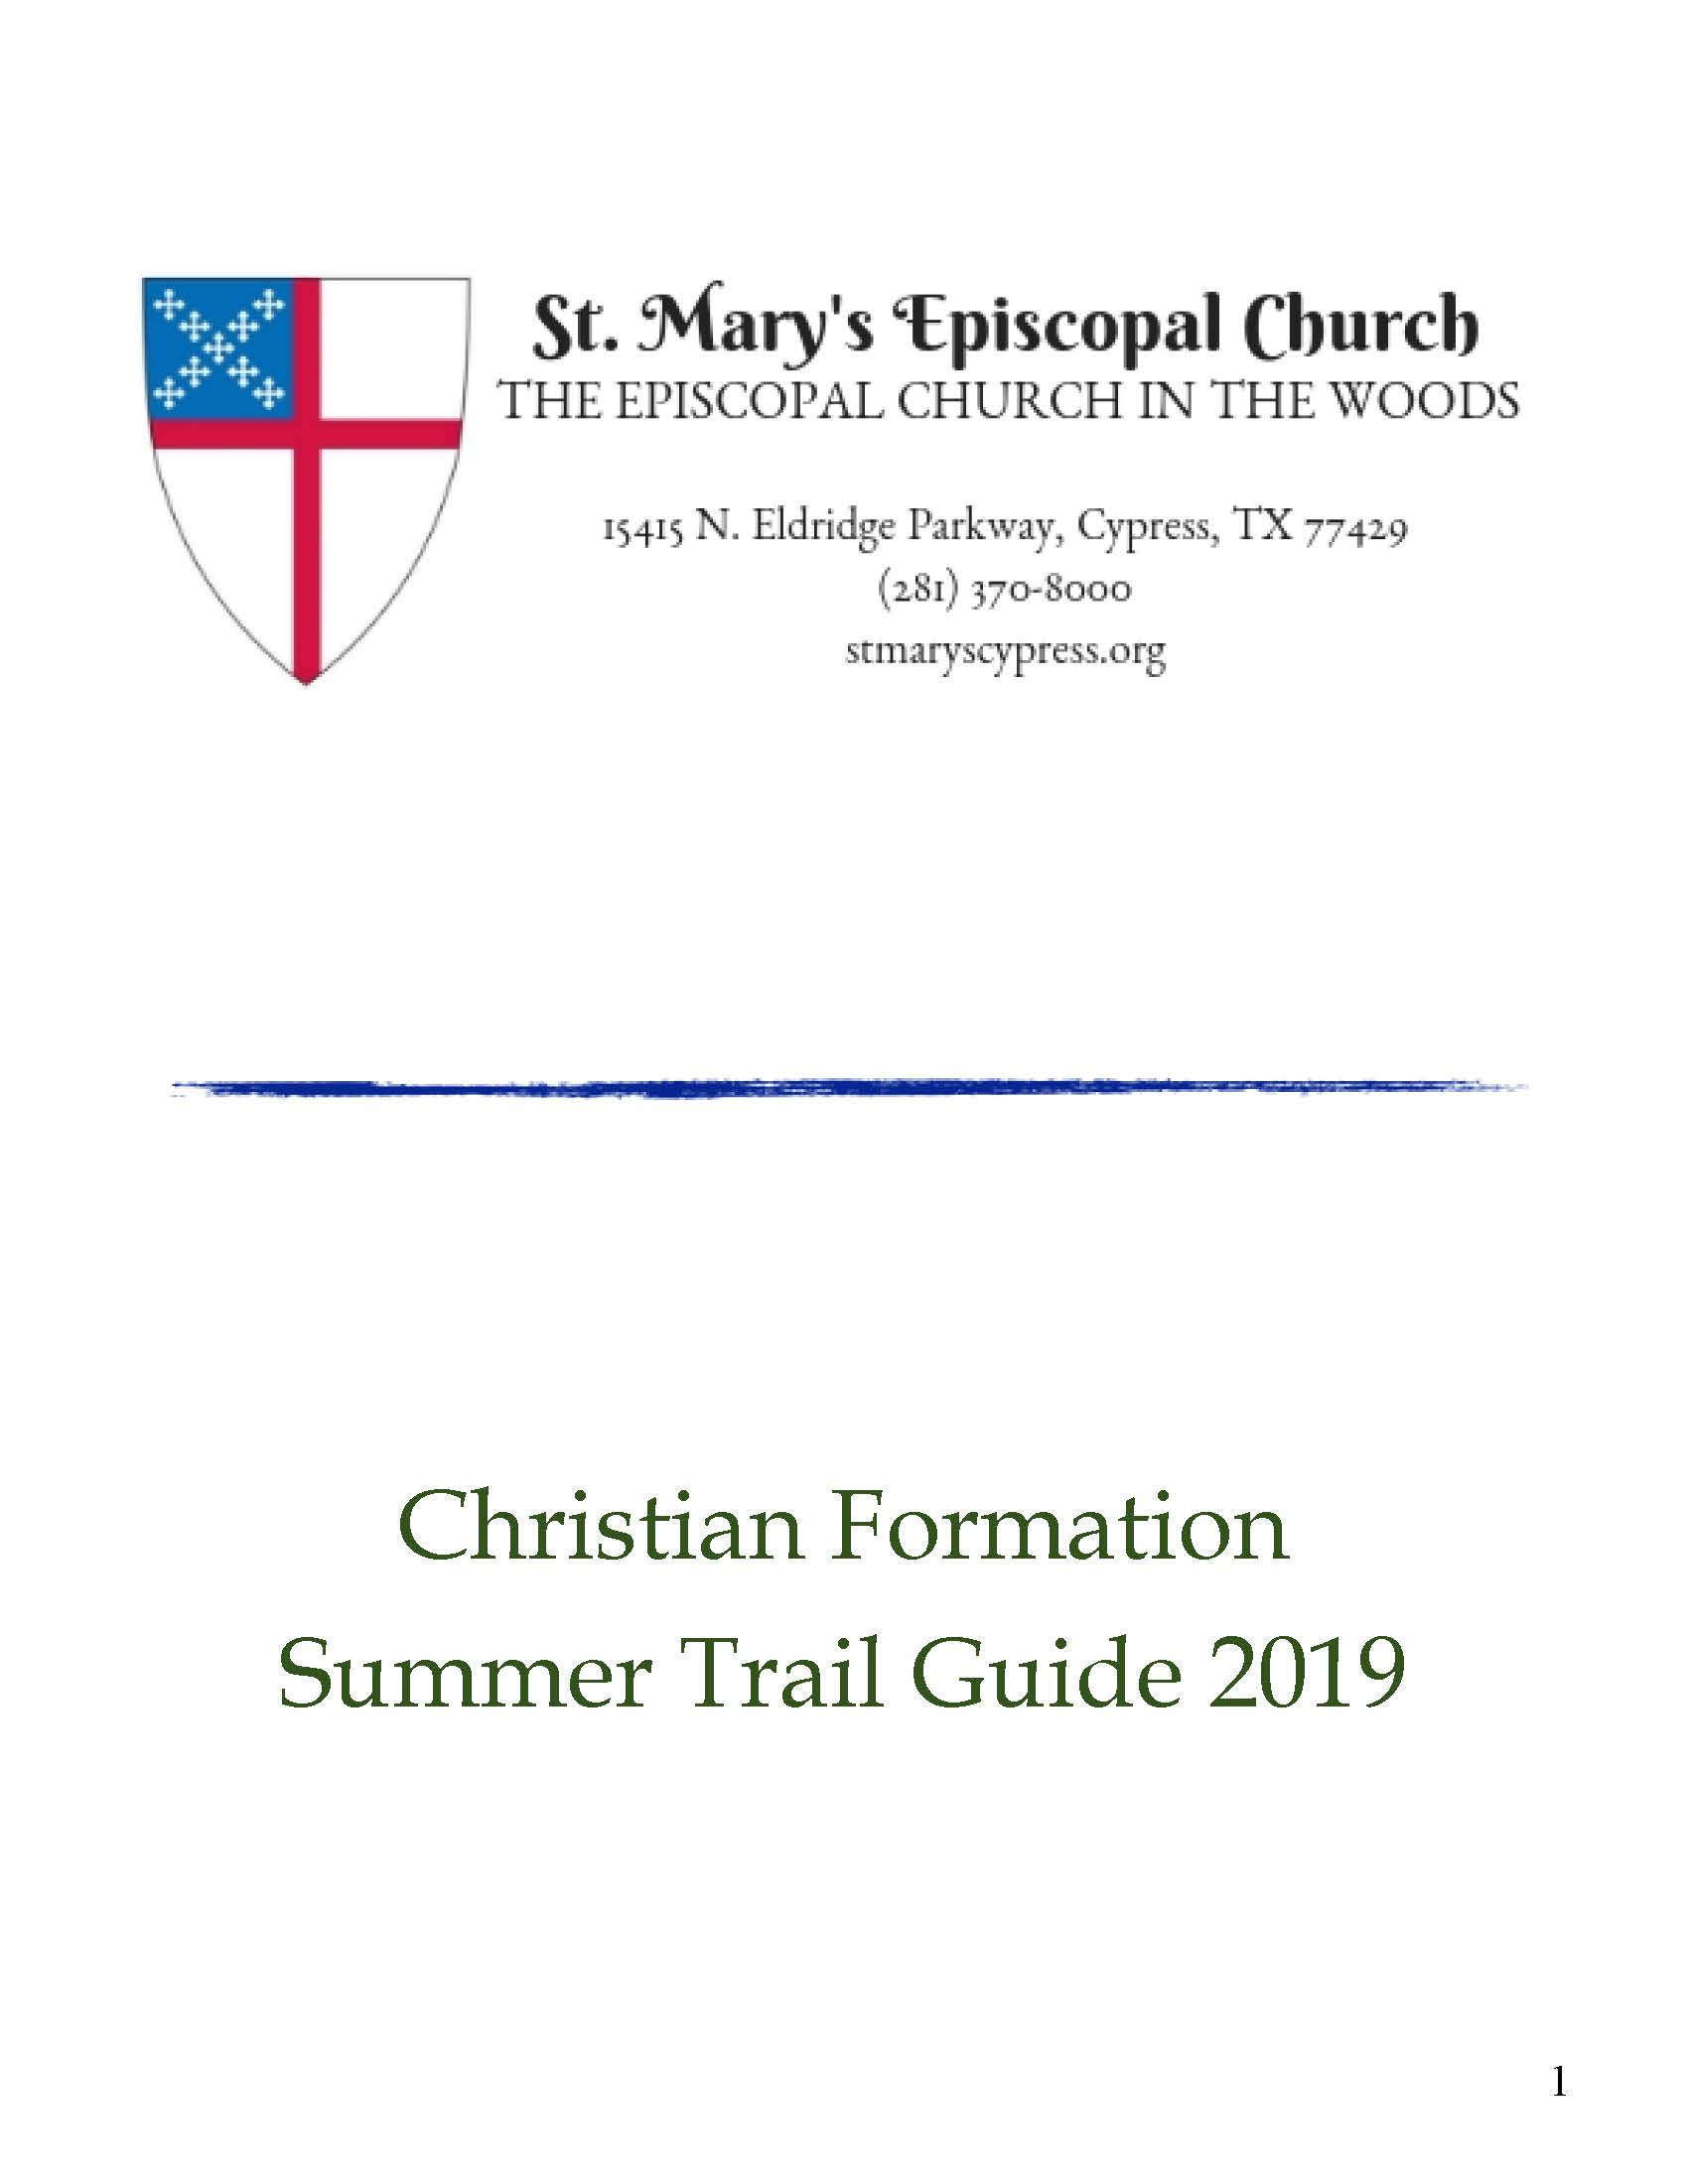 Trailguide Summer 2019-Final Cover.jpg